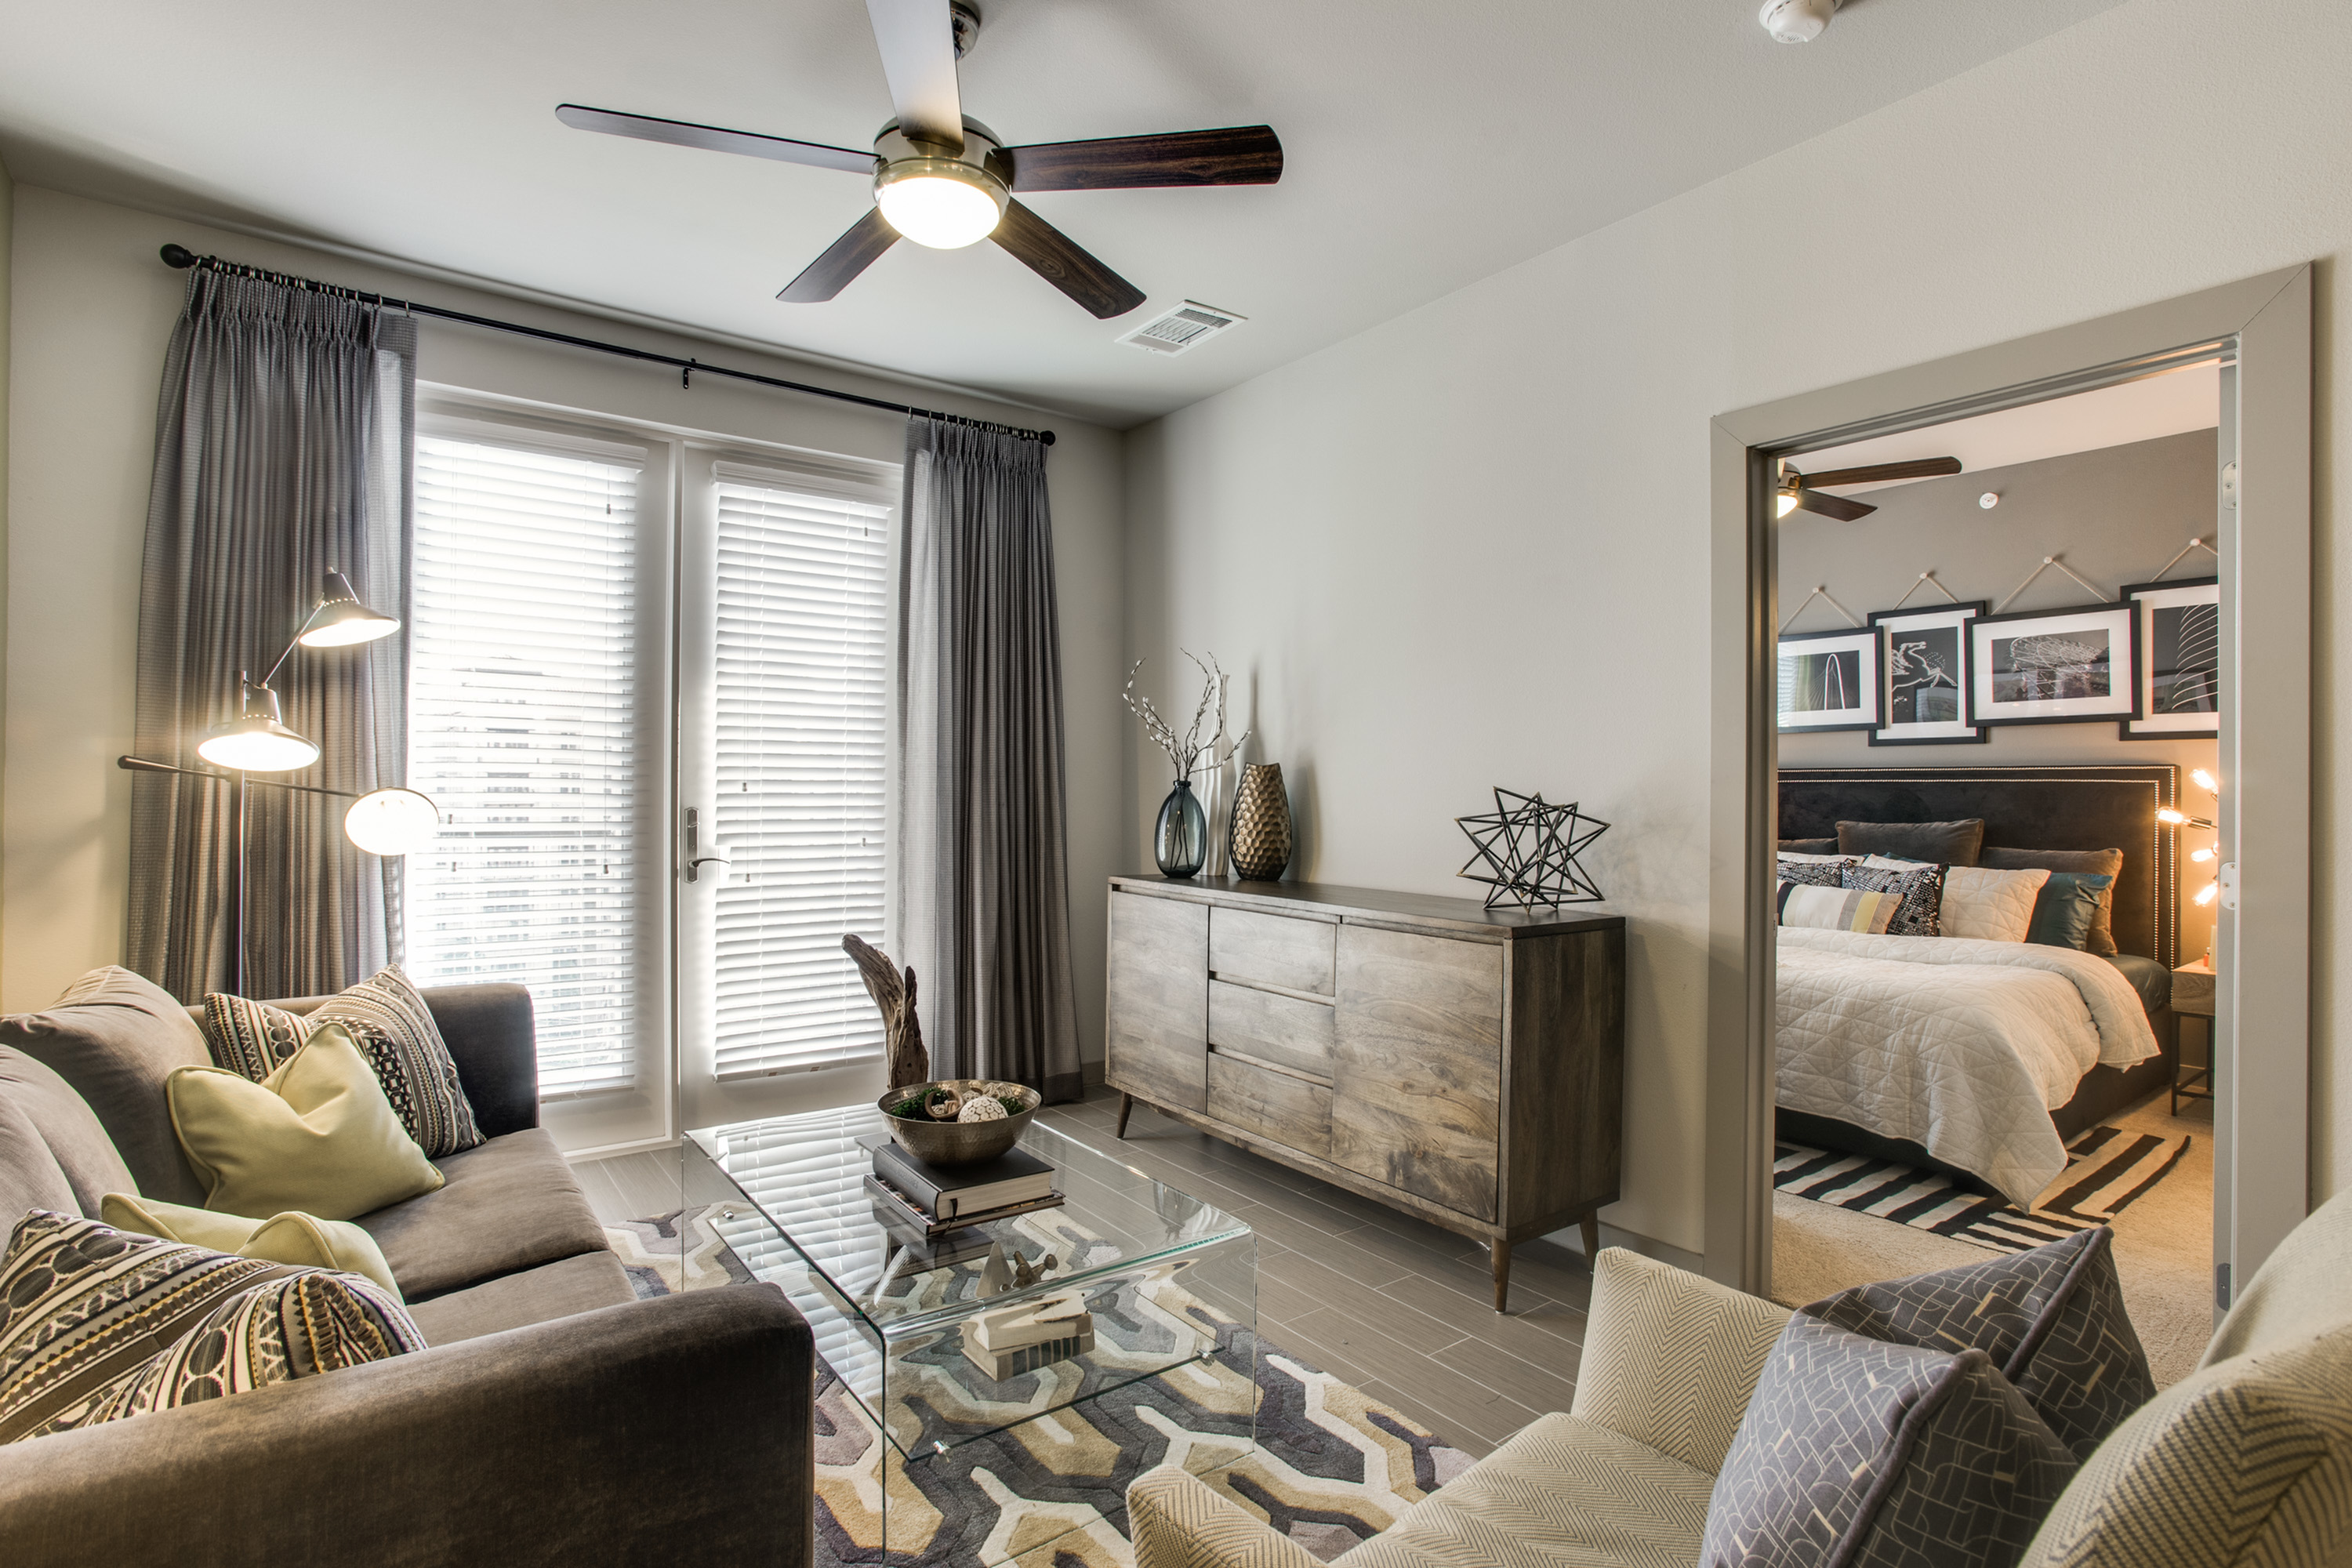 3 Bedroom Apartments Uptown Dallas Style Interior Apartments In Dallas For Rent  Routh Street Flats